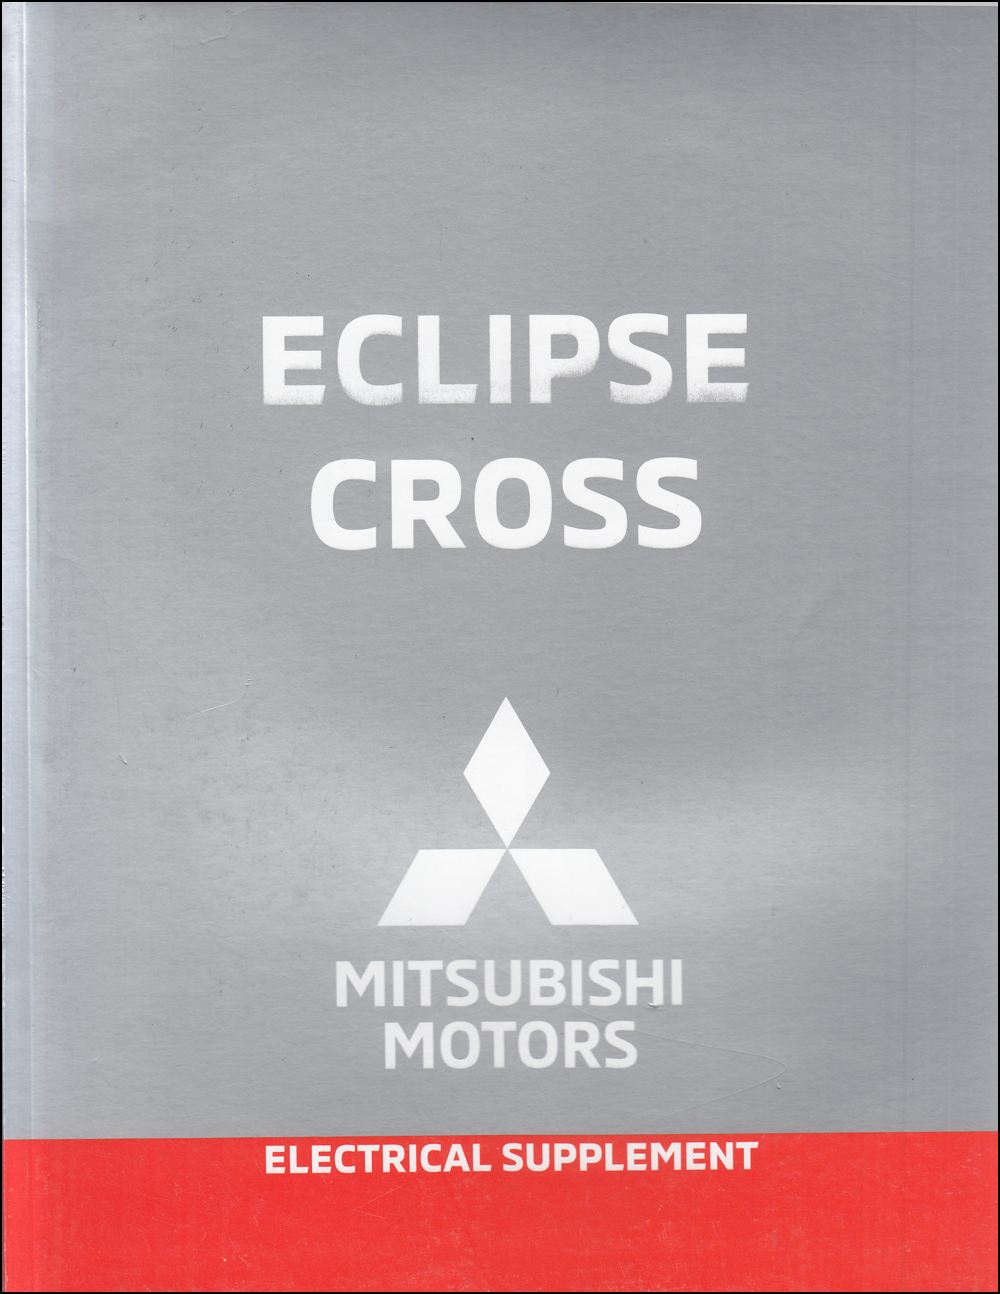 2019 Mitsubishi Eclipse Cross Wiring Diagram Manual Original